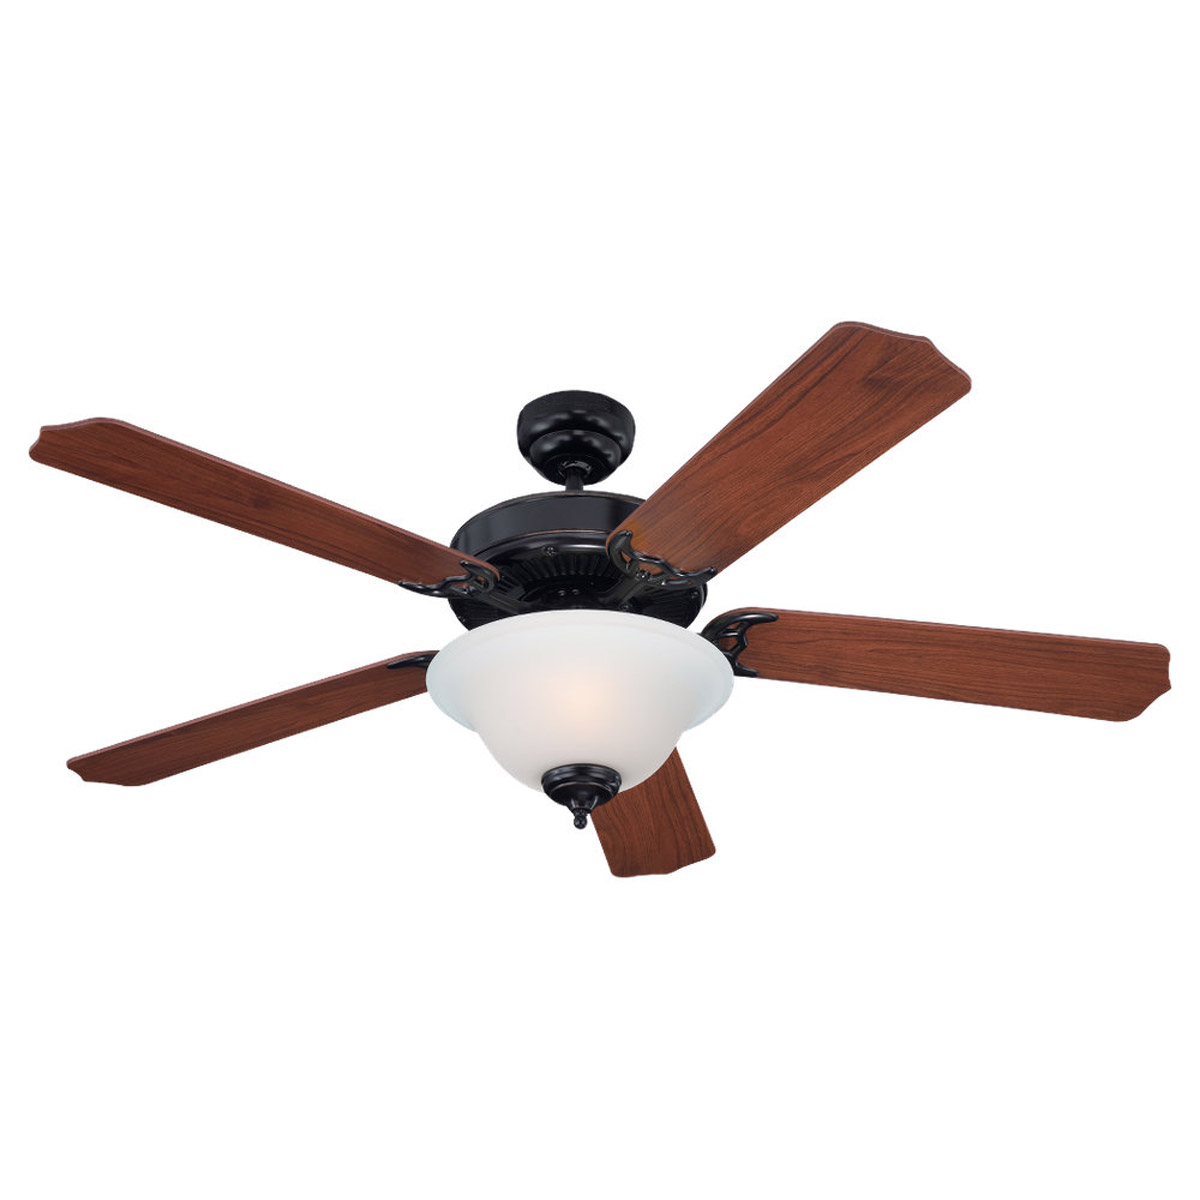 Sea Gull Lighting Quality Max Plus 2 Light Fluorescent Ceiling Fan in Vintage Brown 15030BLE-862